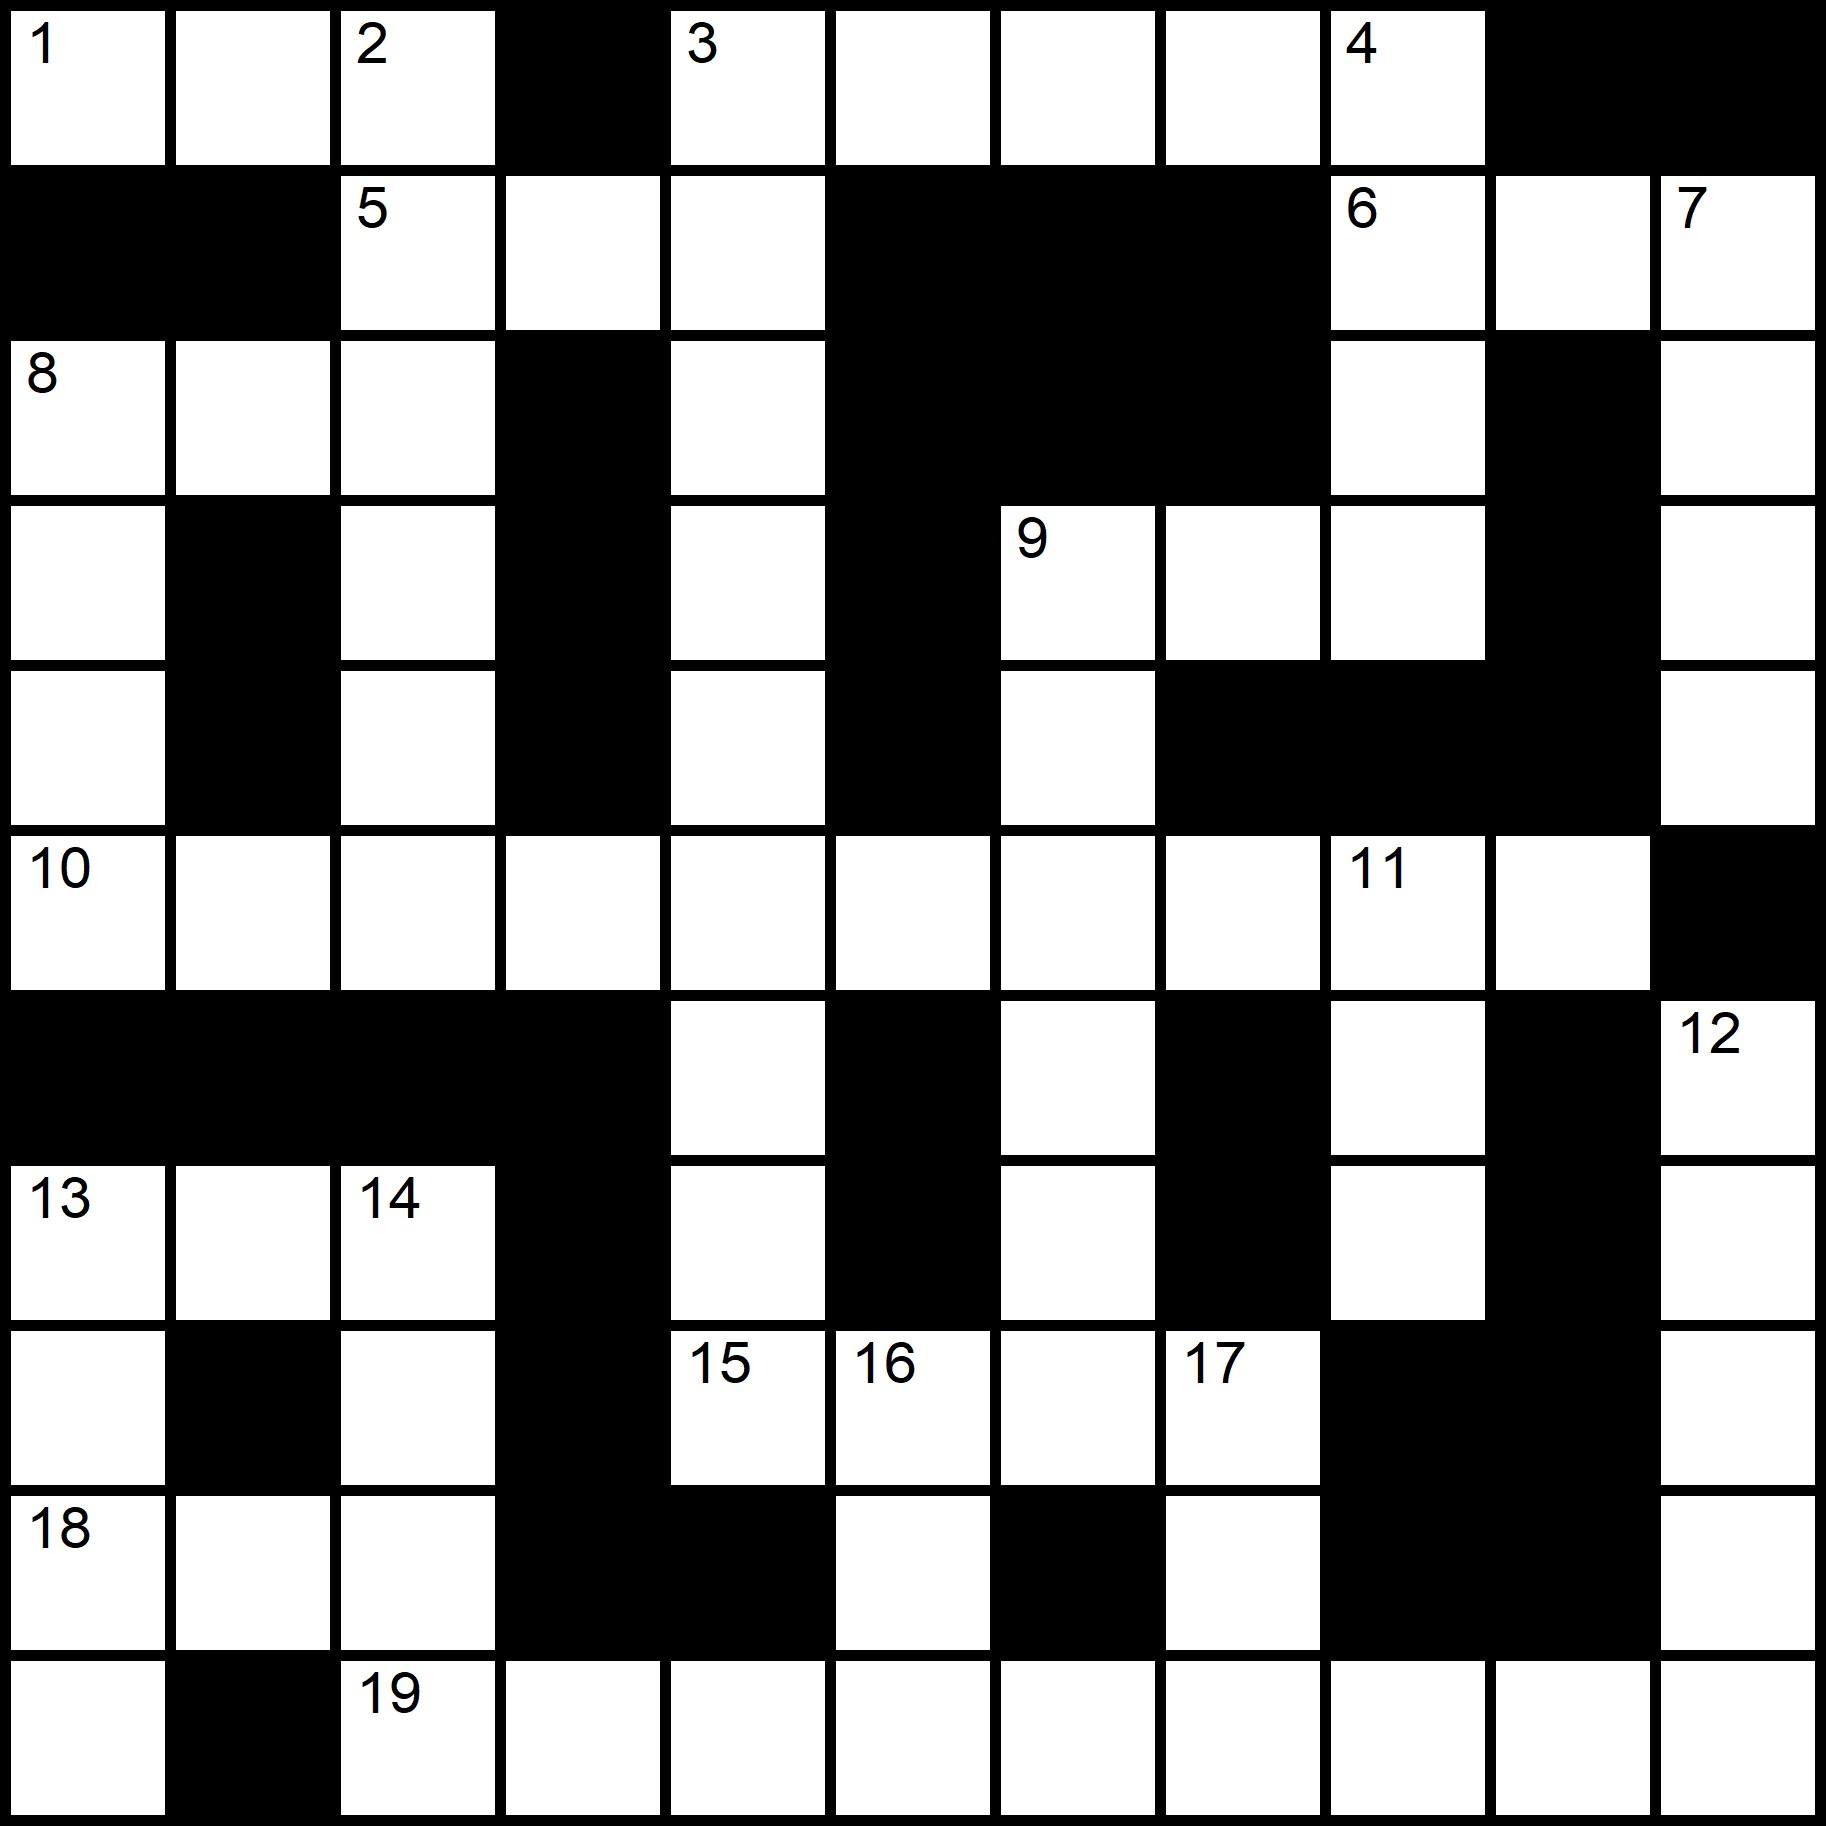 Super Easy Crosswords Printable With Answers - Placidus Flora - Crossword number Thirty